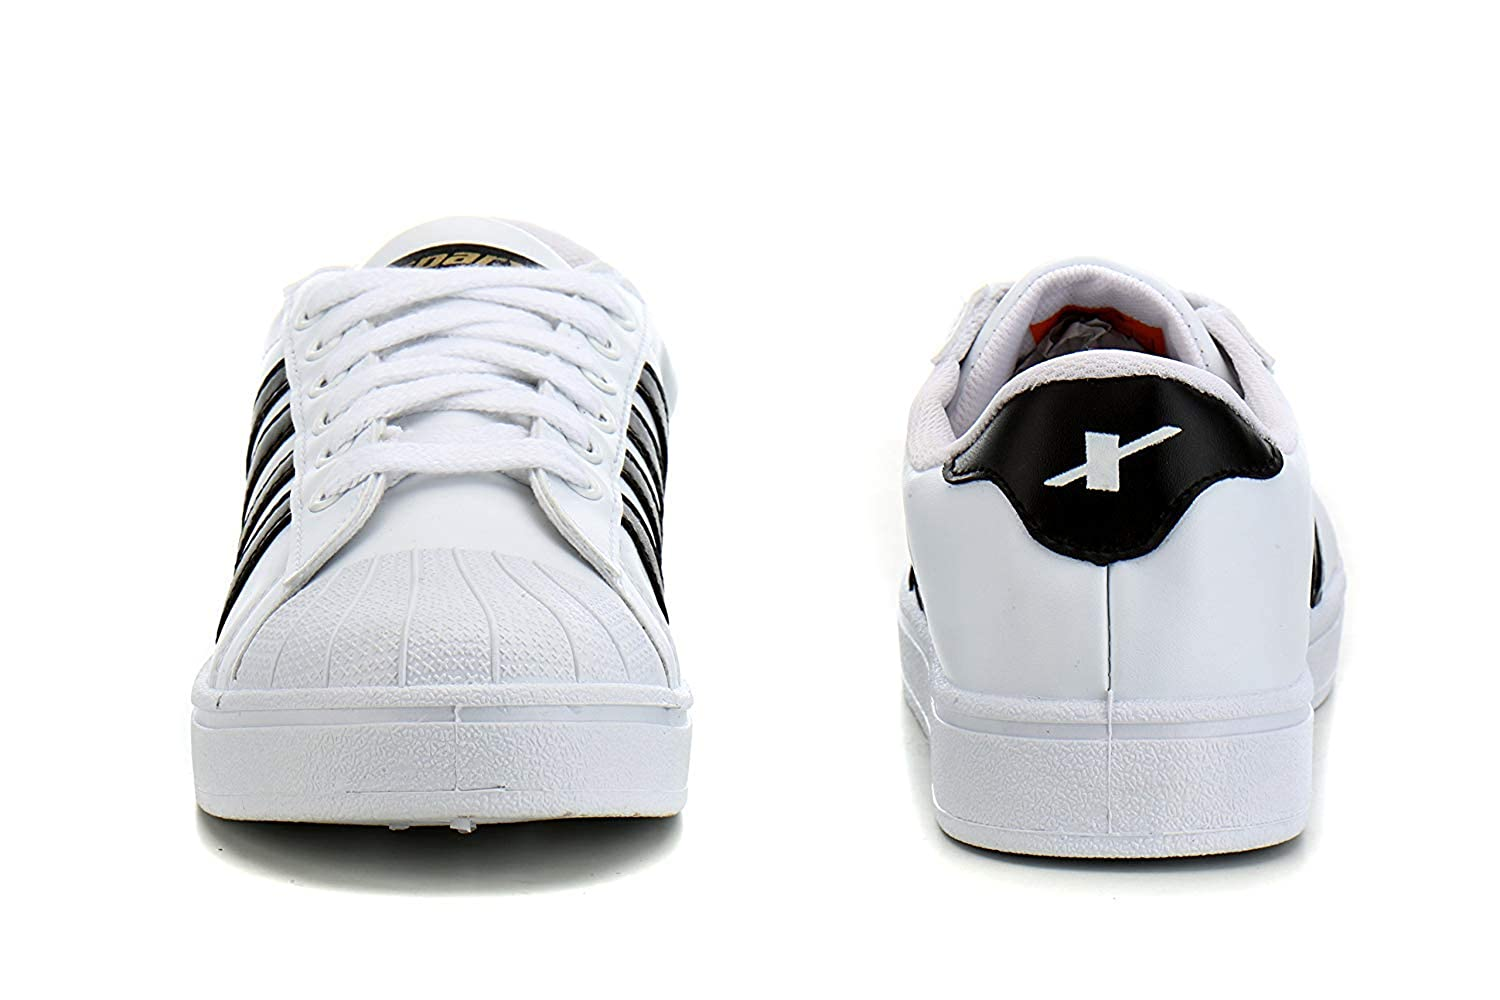 Buy Sparx Men's White Casual Shoes at